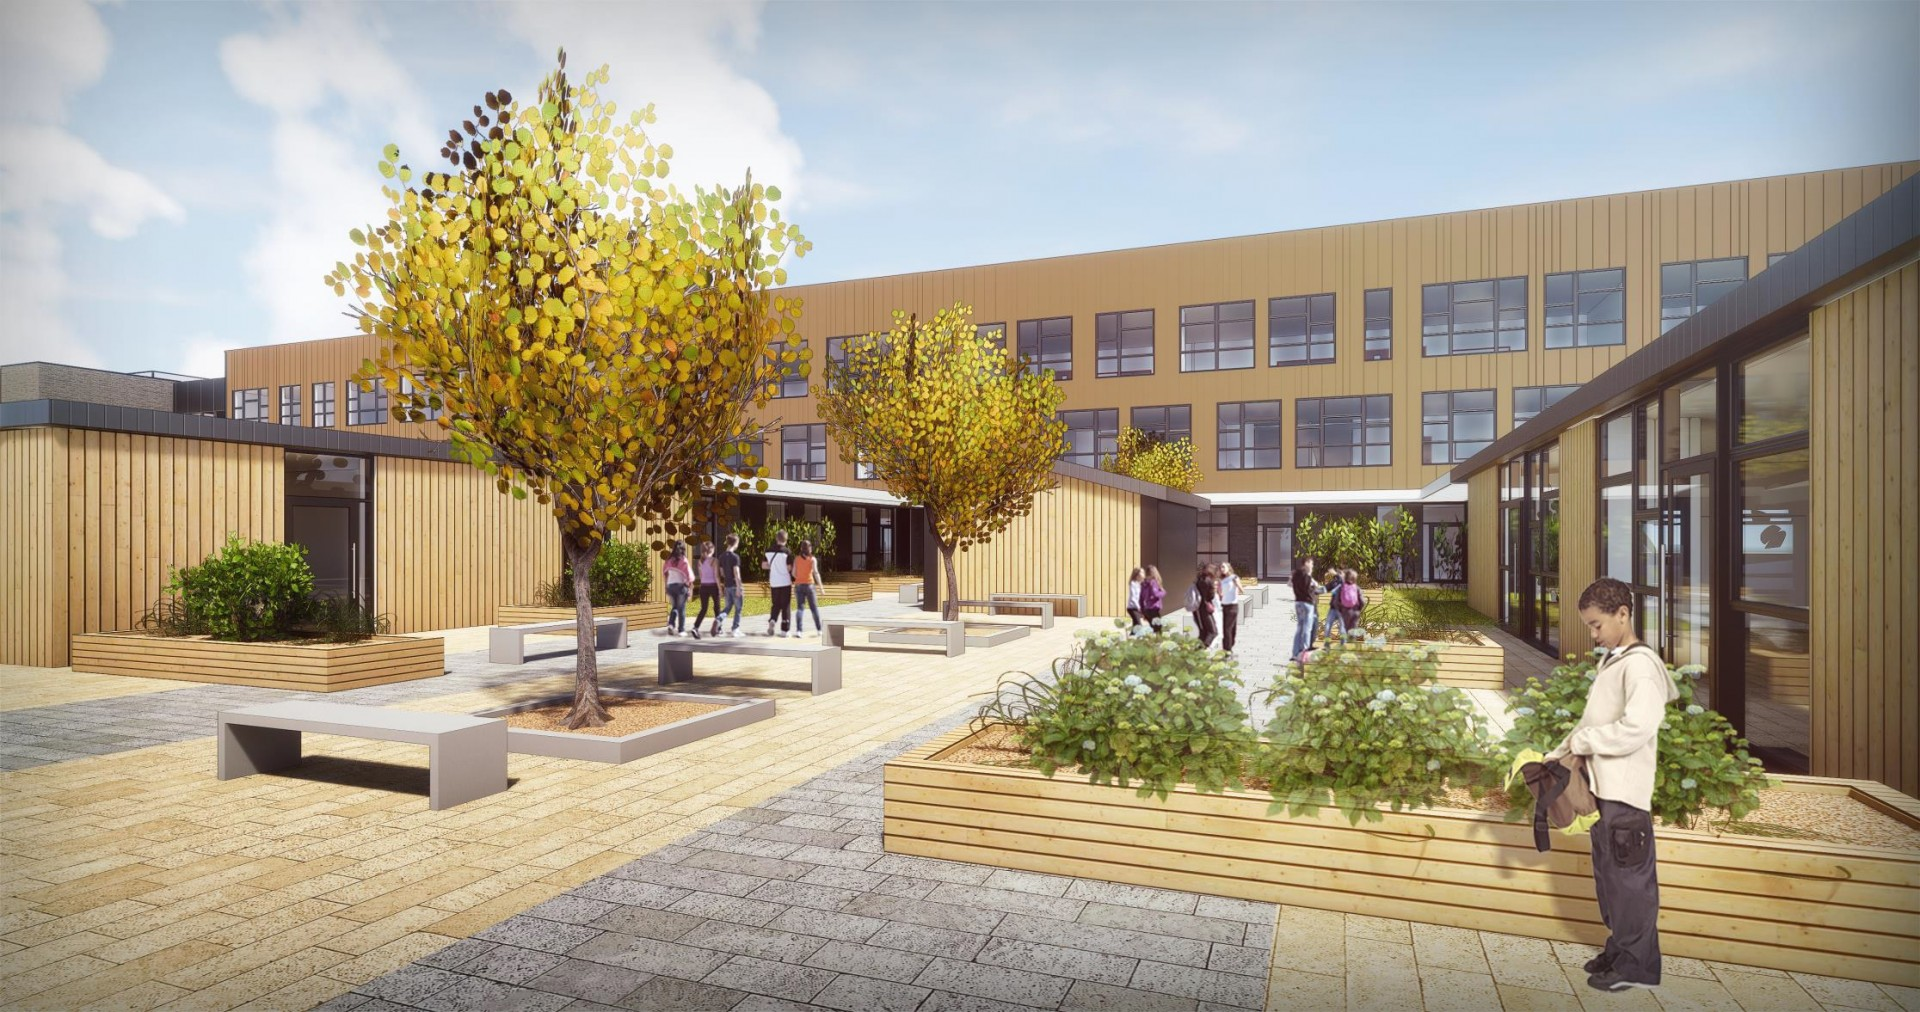 Preparatory works underway at inverurie community campus april 2018 news architecture in for Inverurie swimming pool timetable